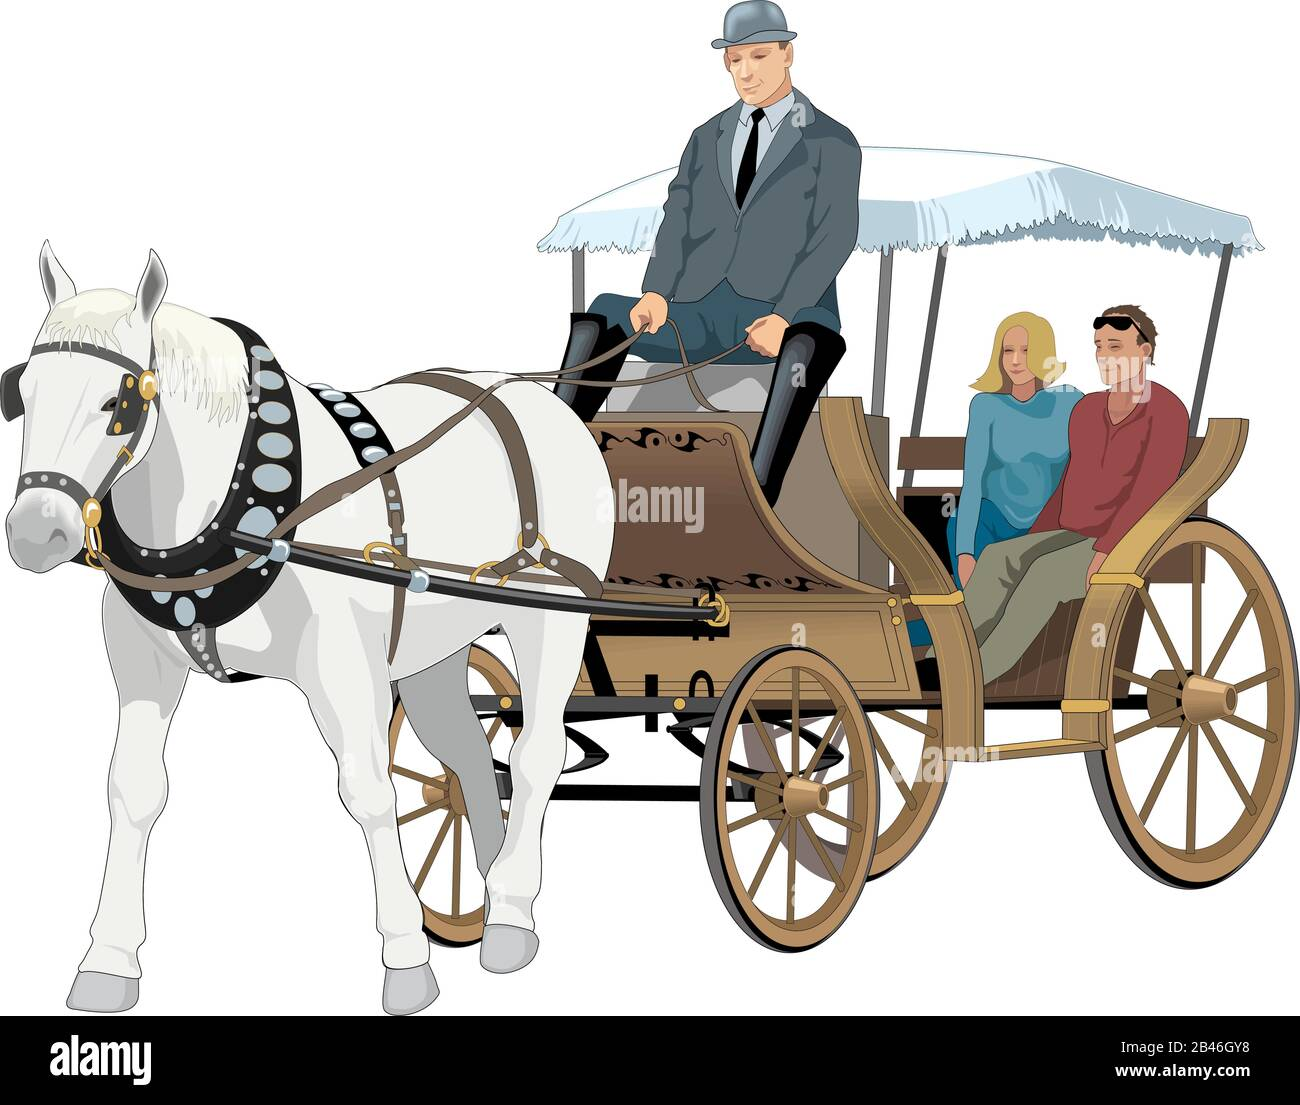 Horse Drawn Carriage Vector Illustration Stock Vector Image Art Alamy